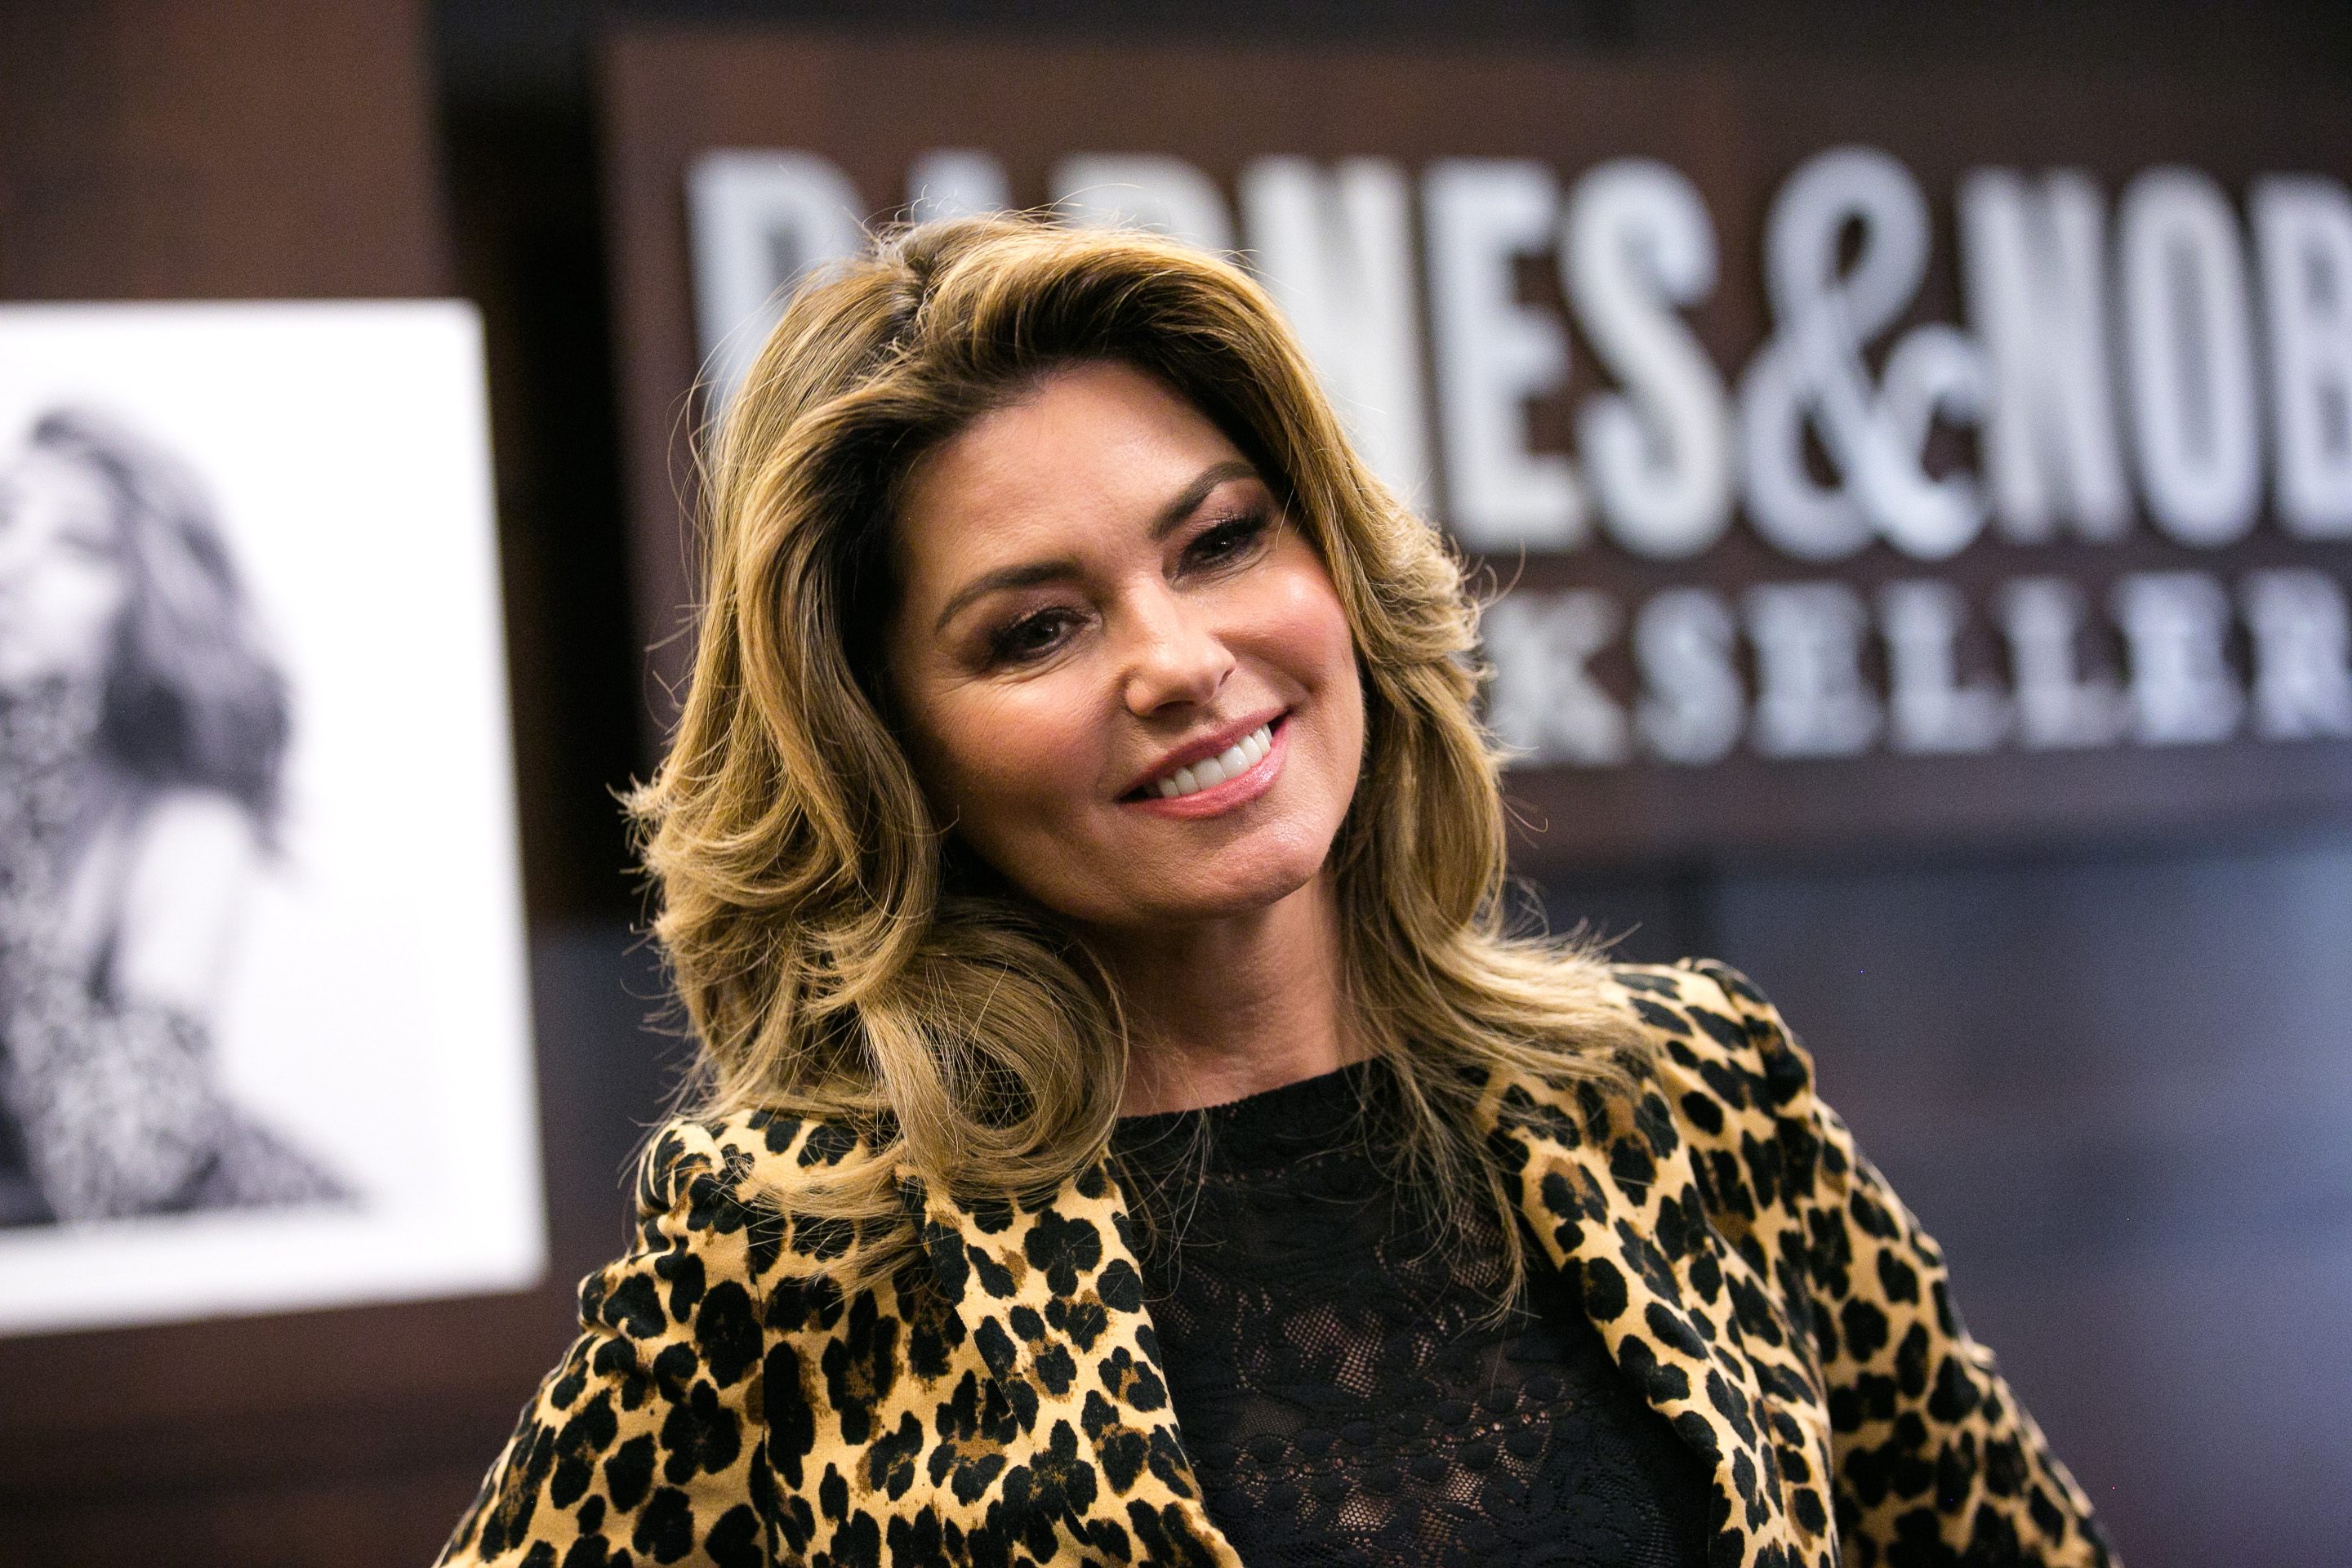 Shania Twain attends her album signing for  Now  in Los Angeles, Calif. on Sept. 29, 2017.